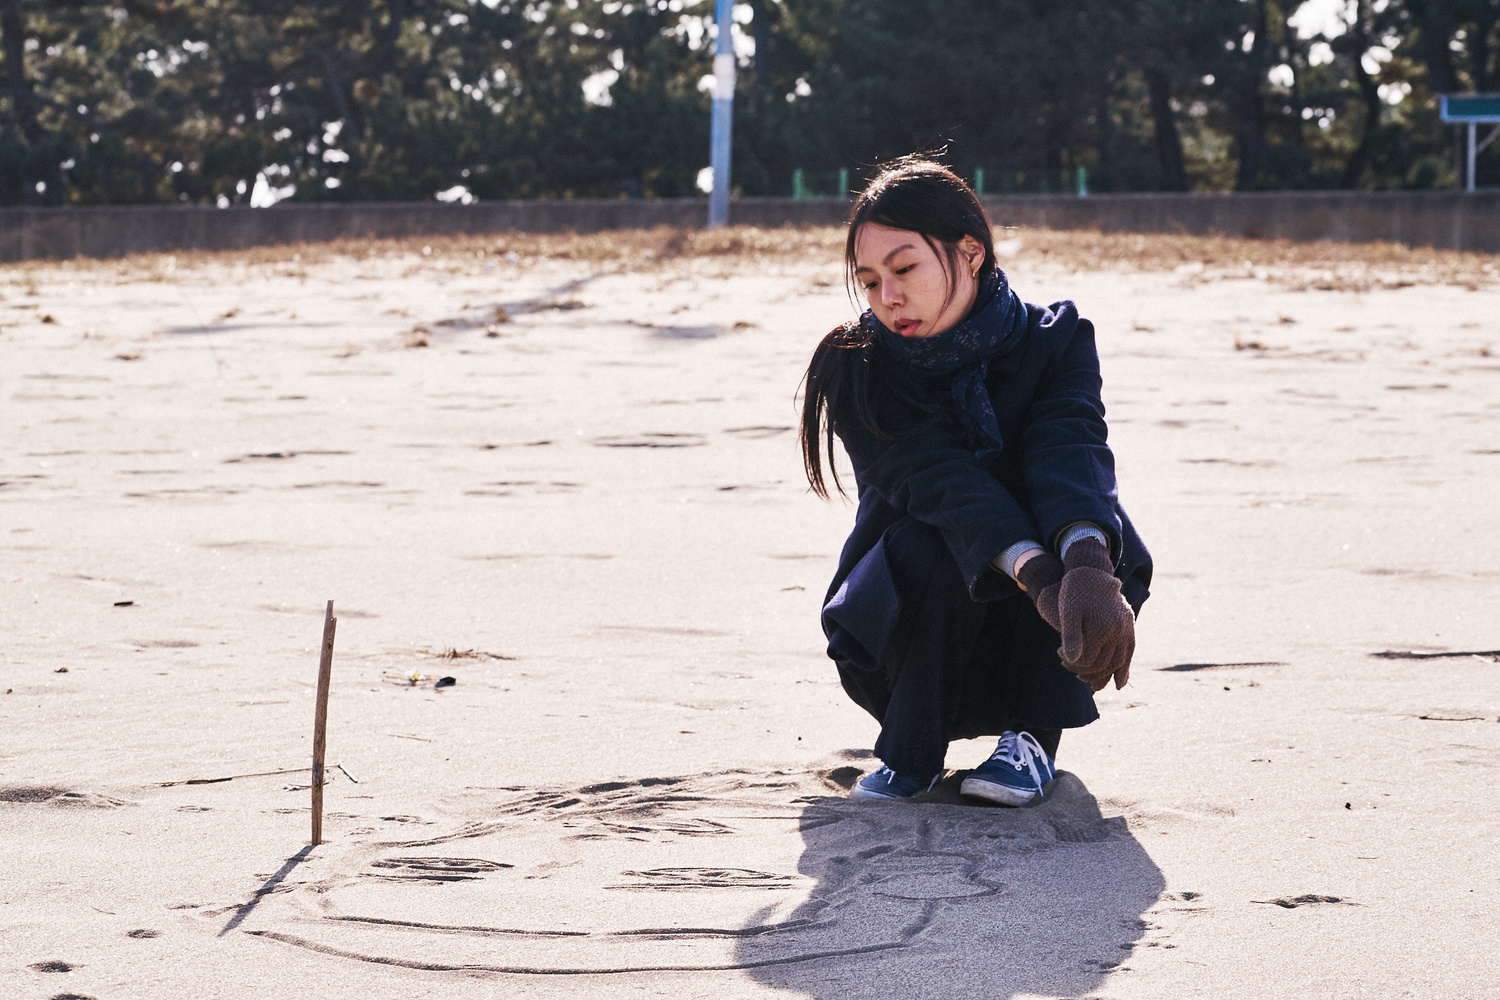 On the Beach at Night Alone. 2017. South Korea. Directed by Hong Sang-soo. Courtesy of Cinema Guild